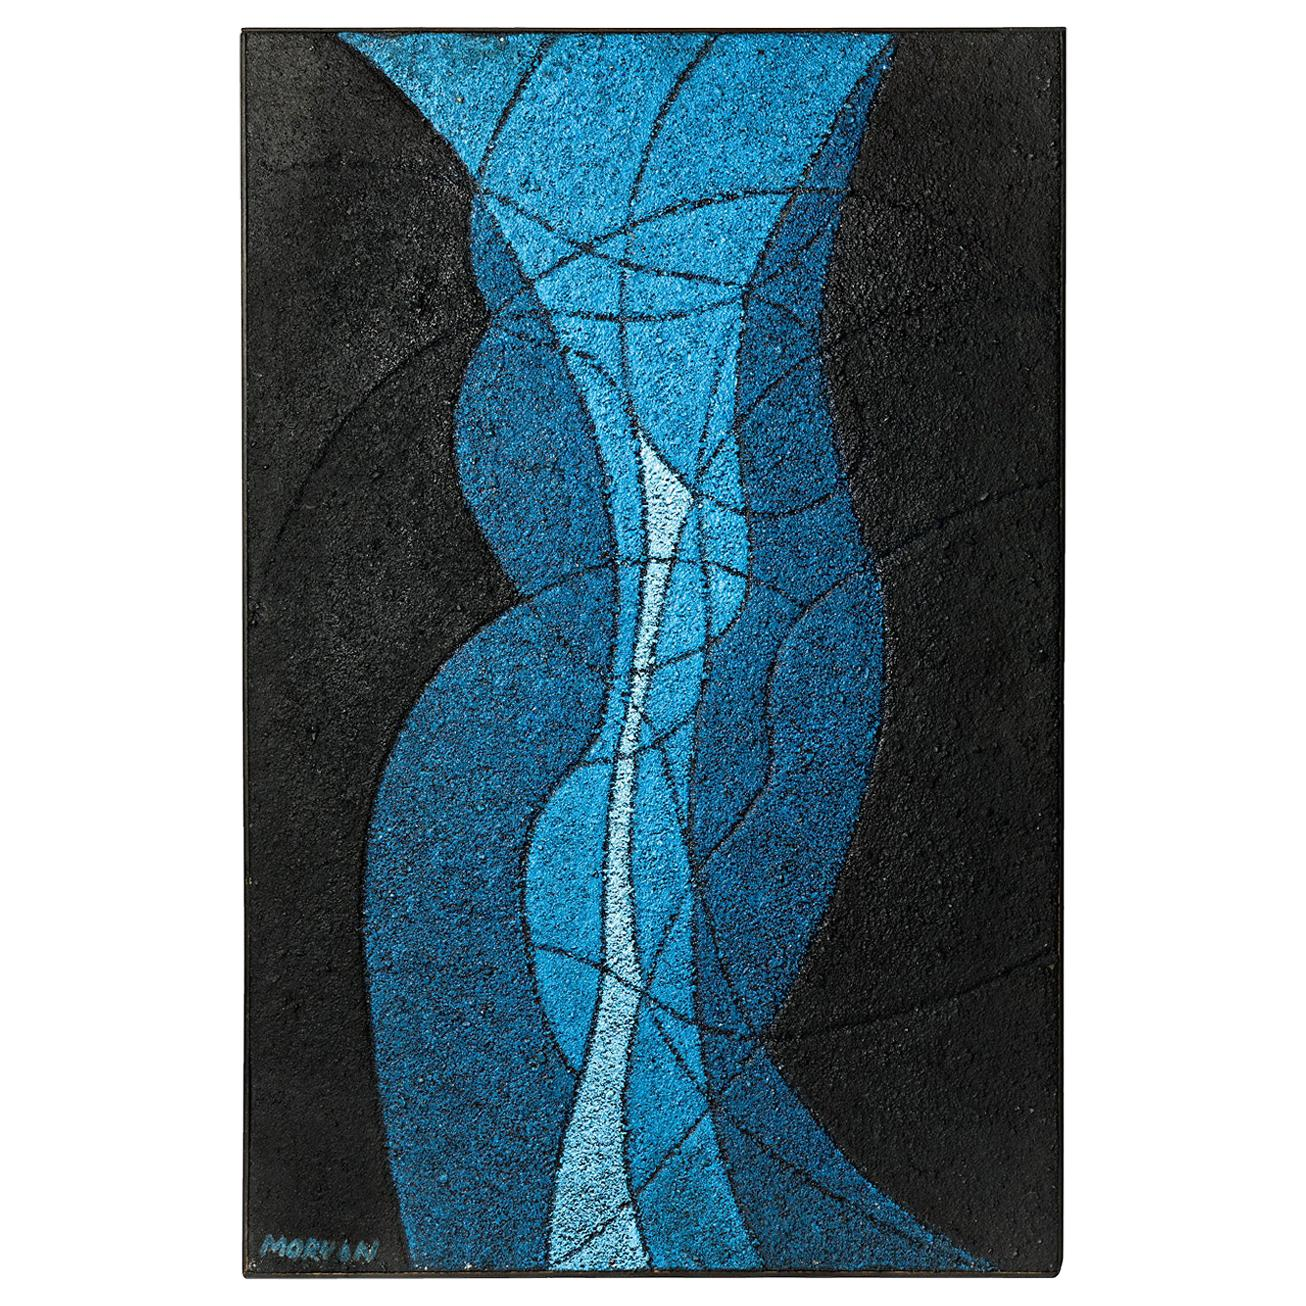 Abstract Blue and Black Painting by Jean Jacques Morvan circa 1960 Oil on Panel